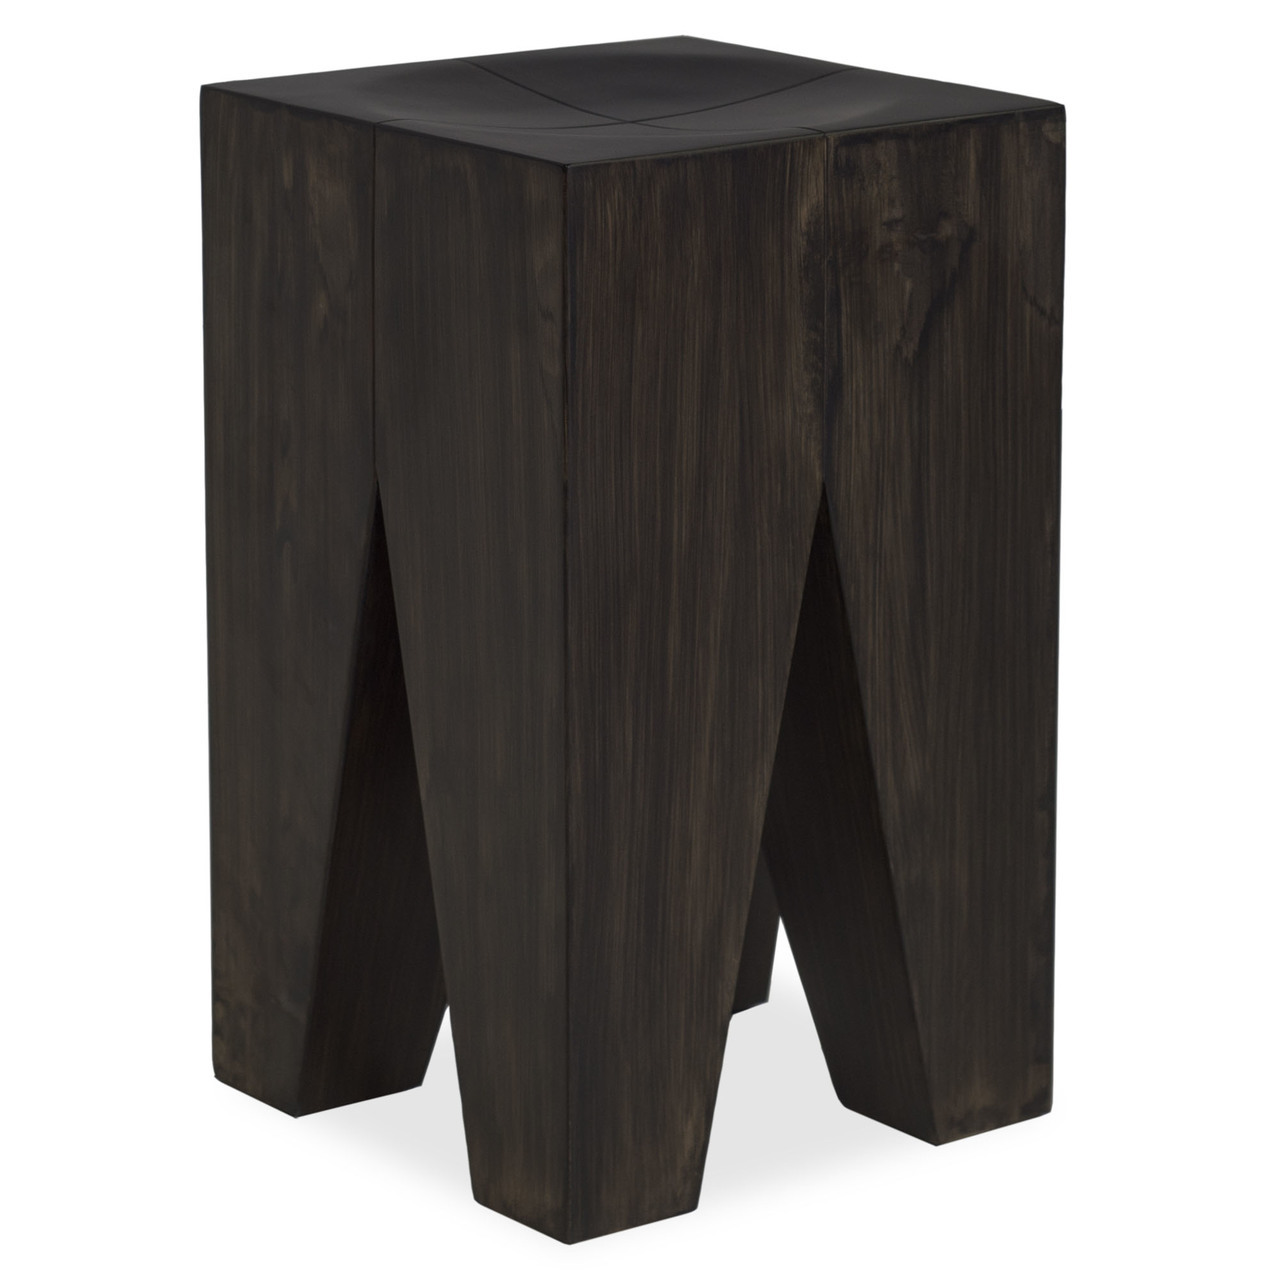 Marvelous Peg Accent Table Stool Caraccident5 Cool Chair Designs And Ideas Caraccident5Info